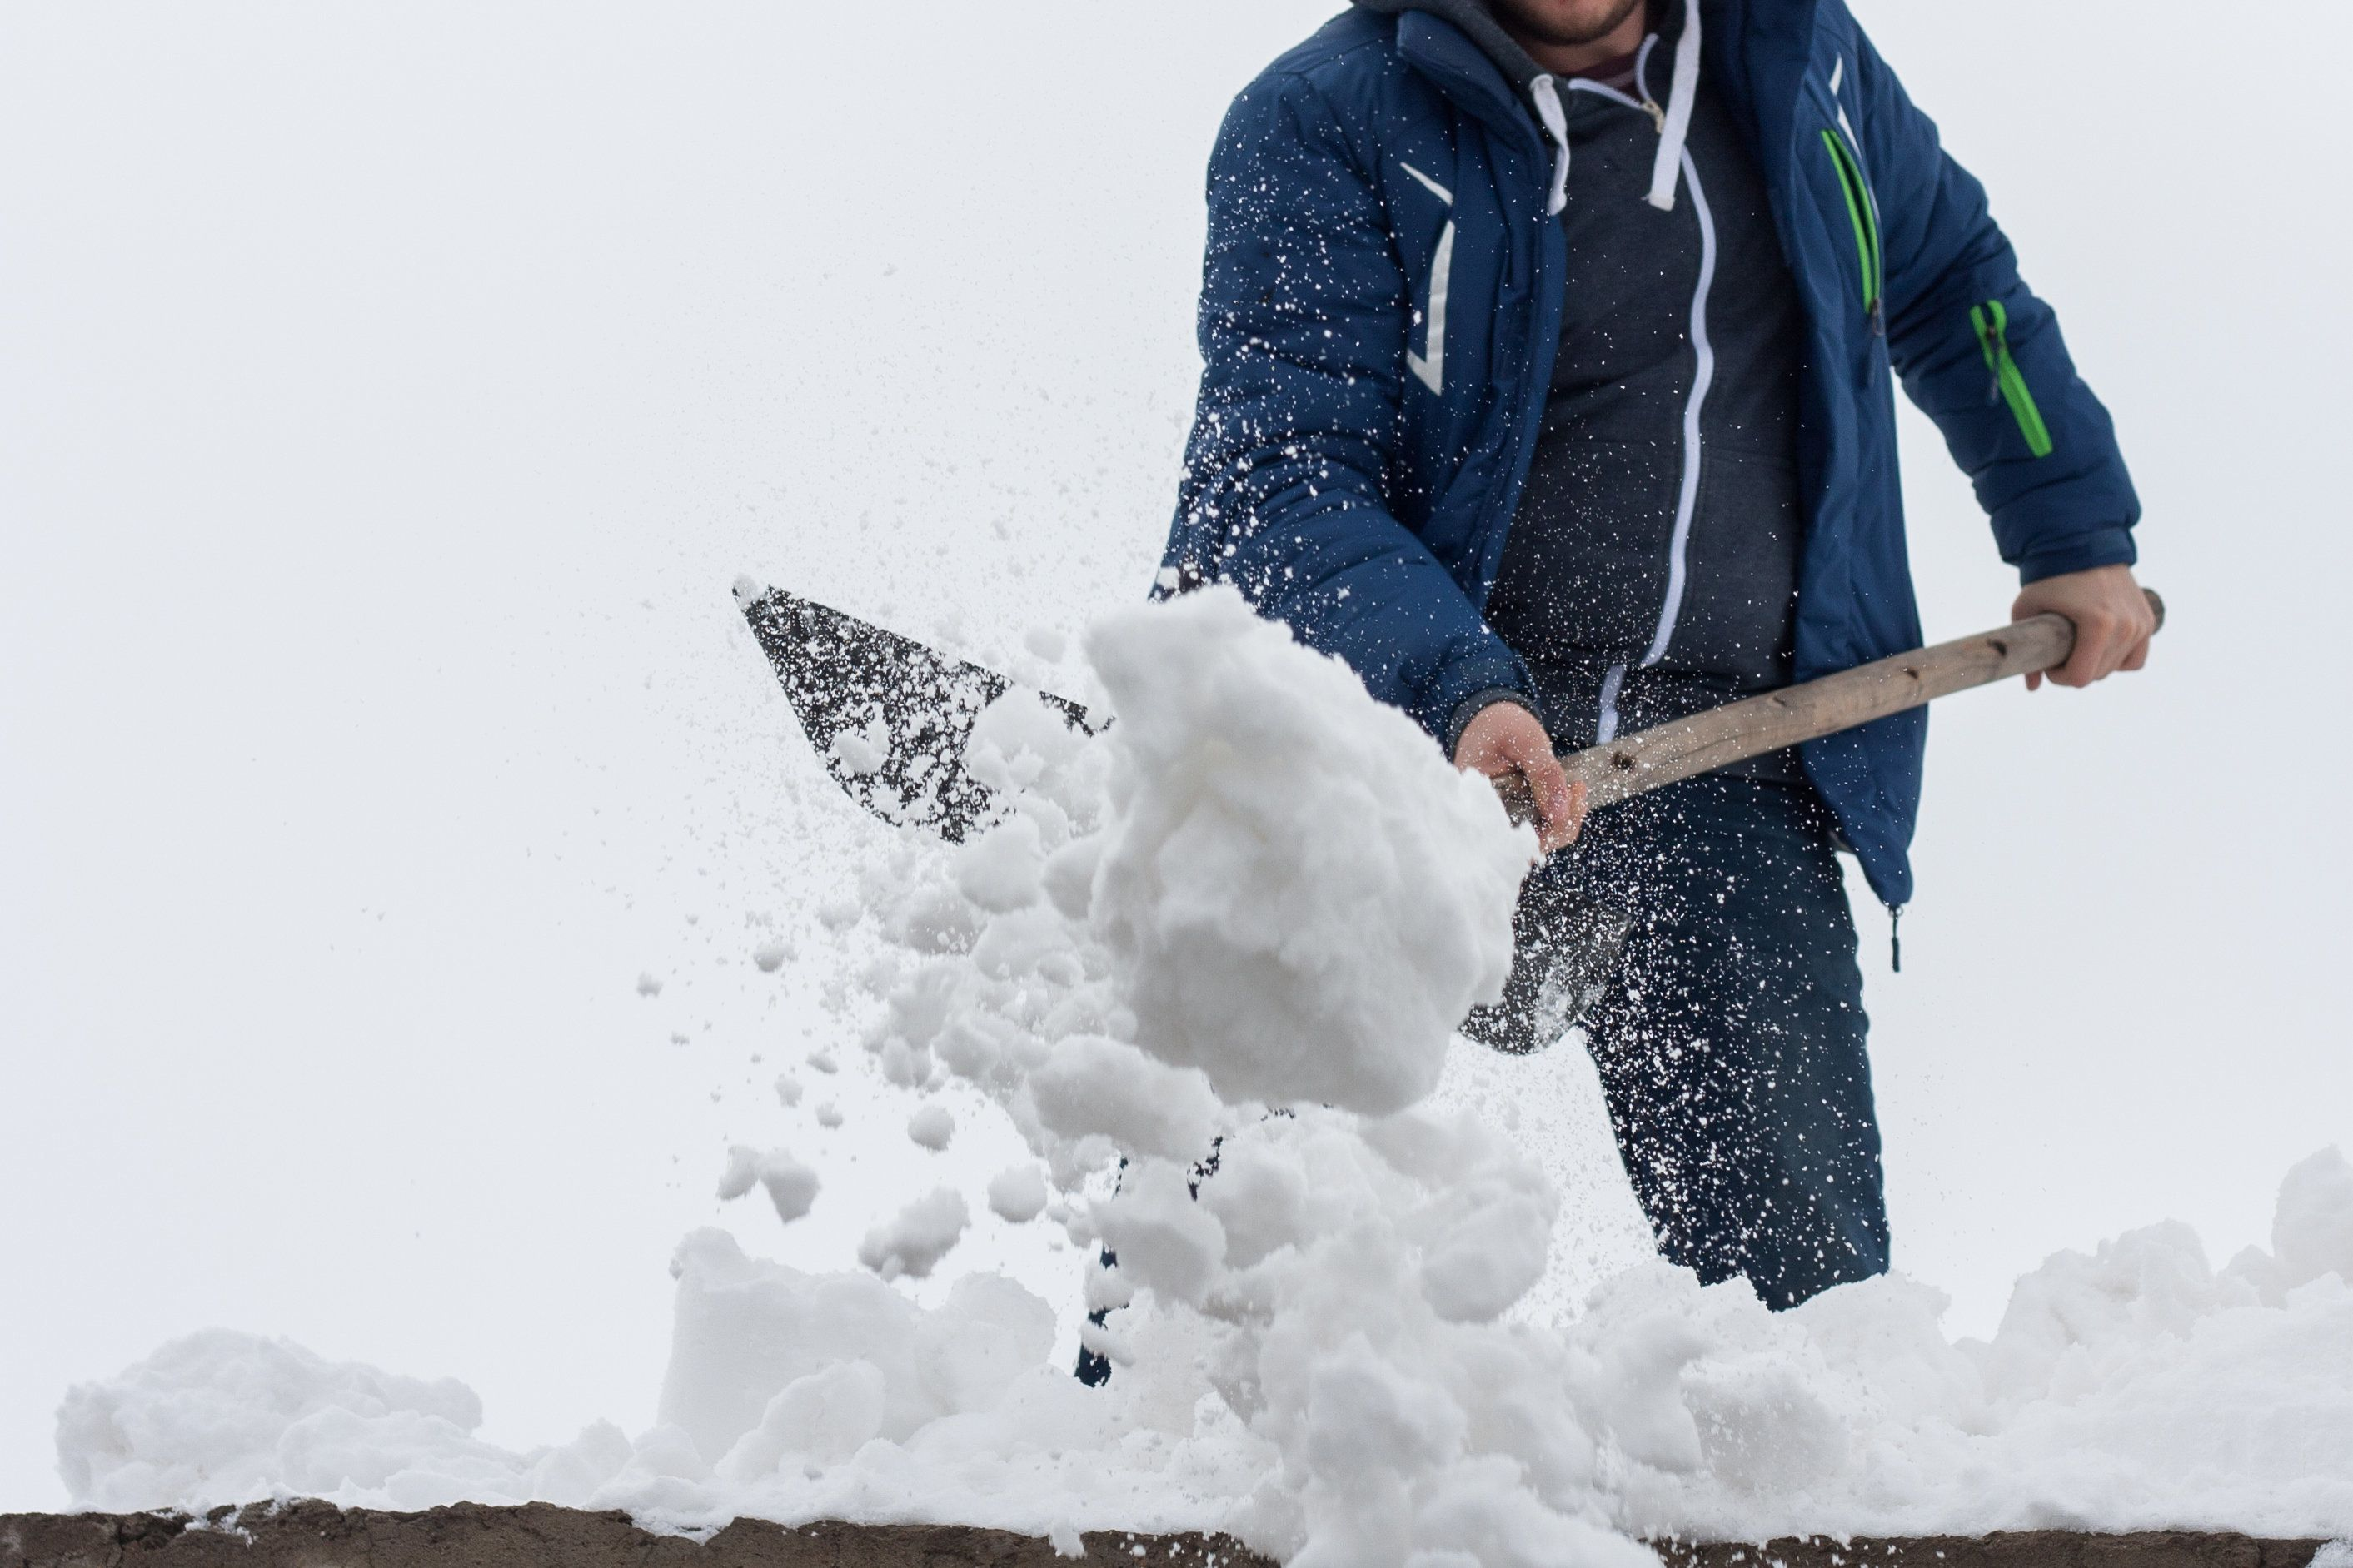 Snow shovelers should take frequent breaks, stay well hydrated and seek medical attention if experiencing any chest pain.